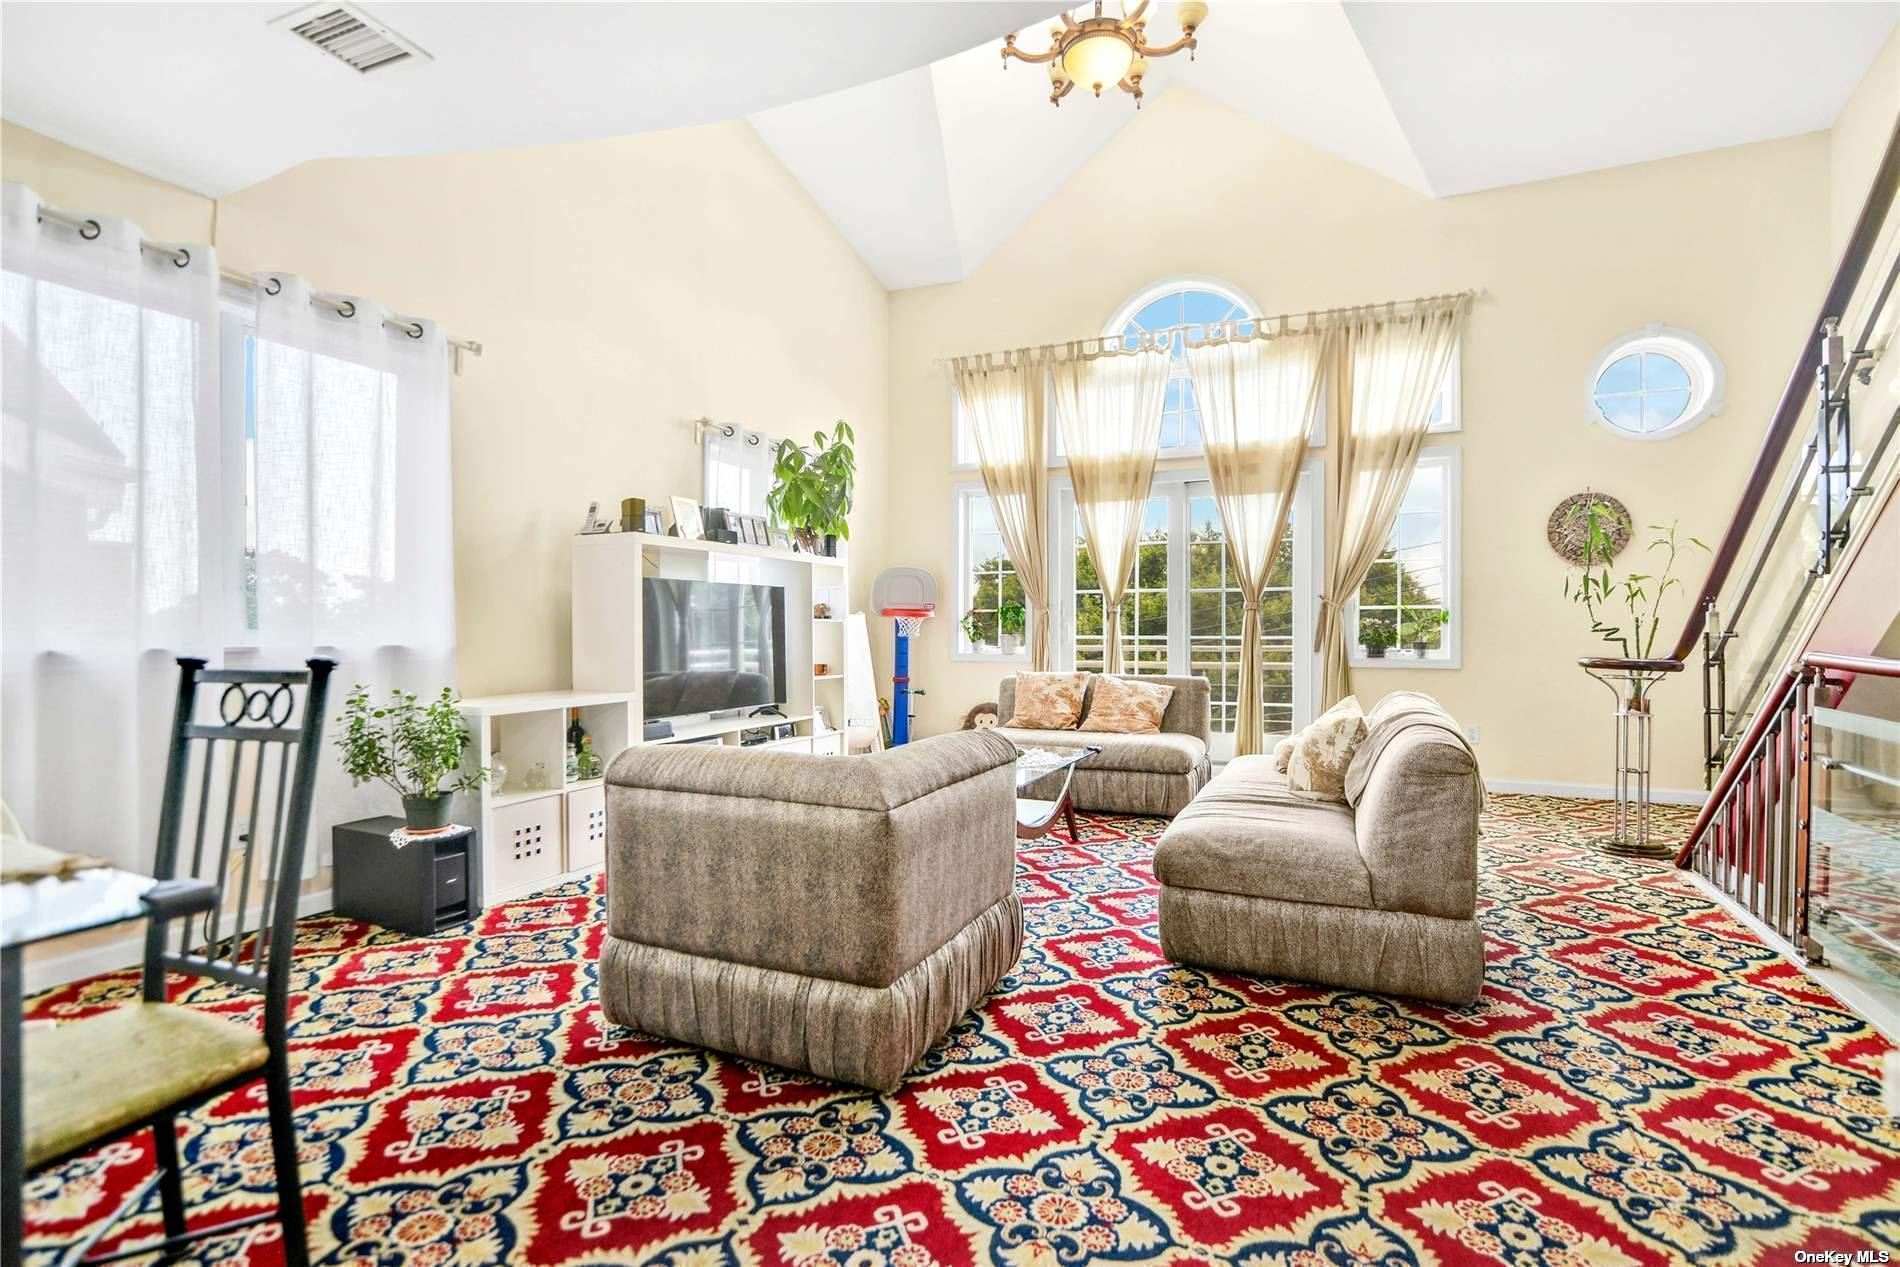 84-33 60 Drive, Middle Village, NY 11379 - MLS#: 3331517